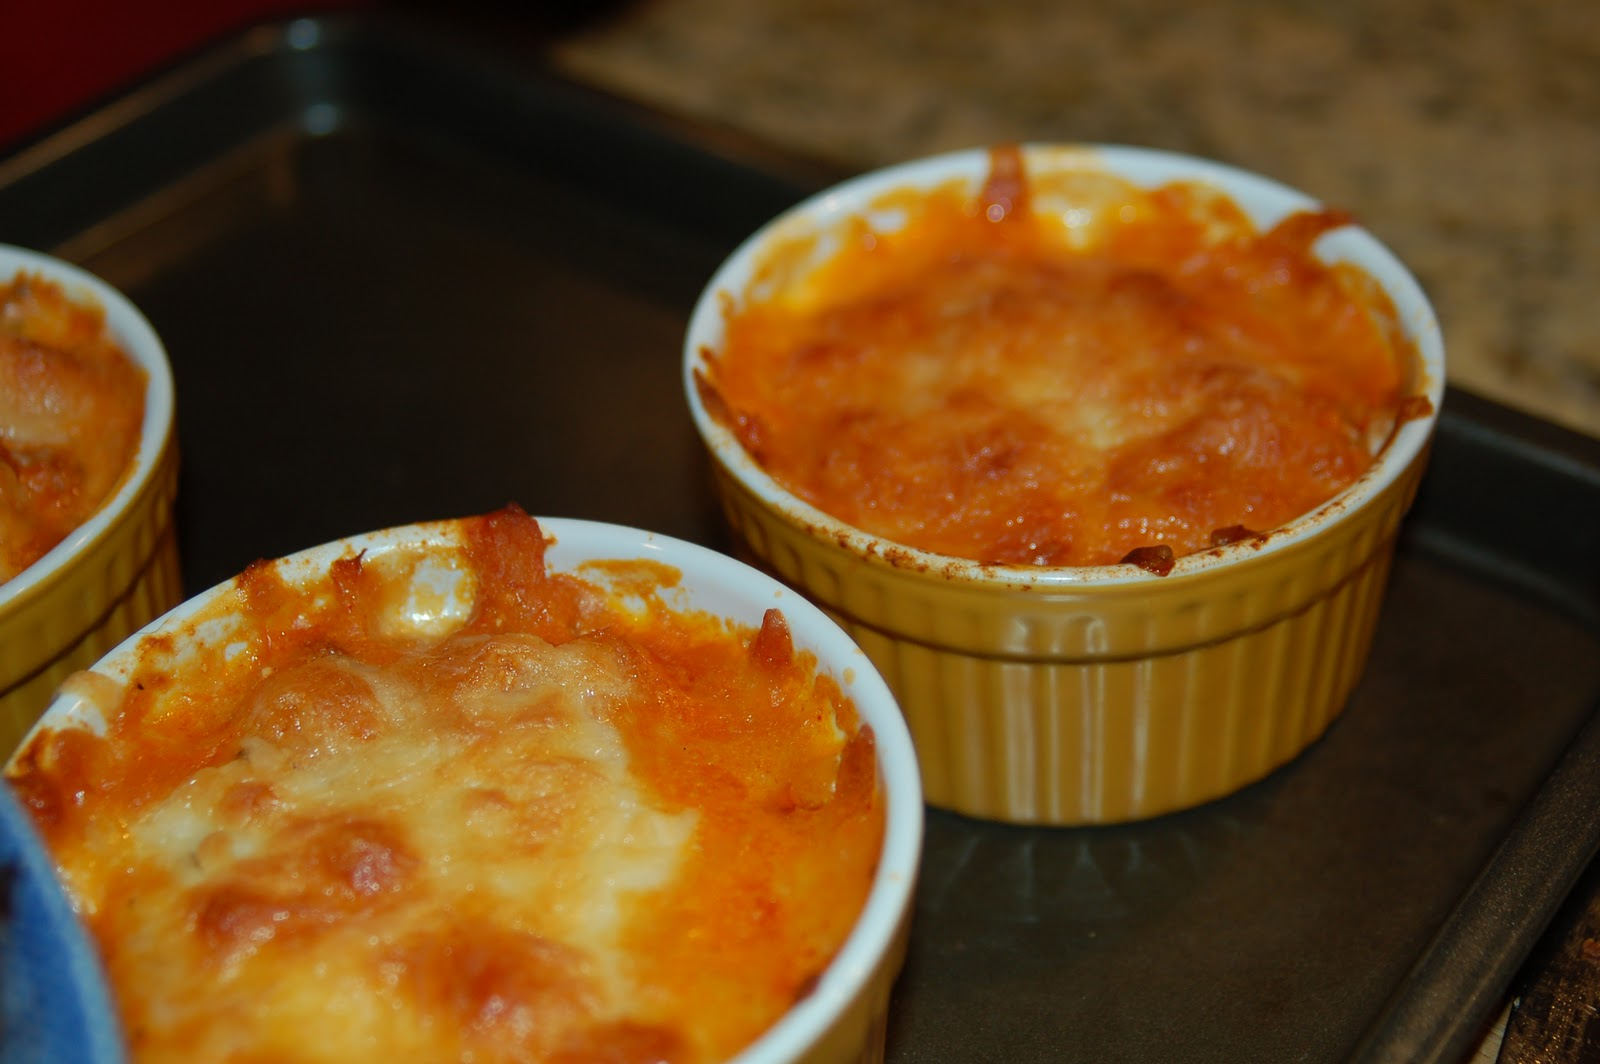 Jordana's Baked Spaghetti Squash With Tomato And Ricotta Recipes ...